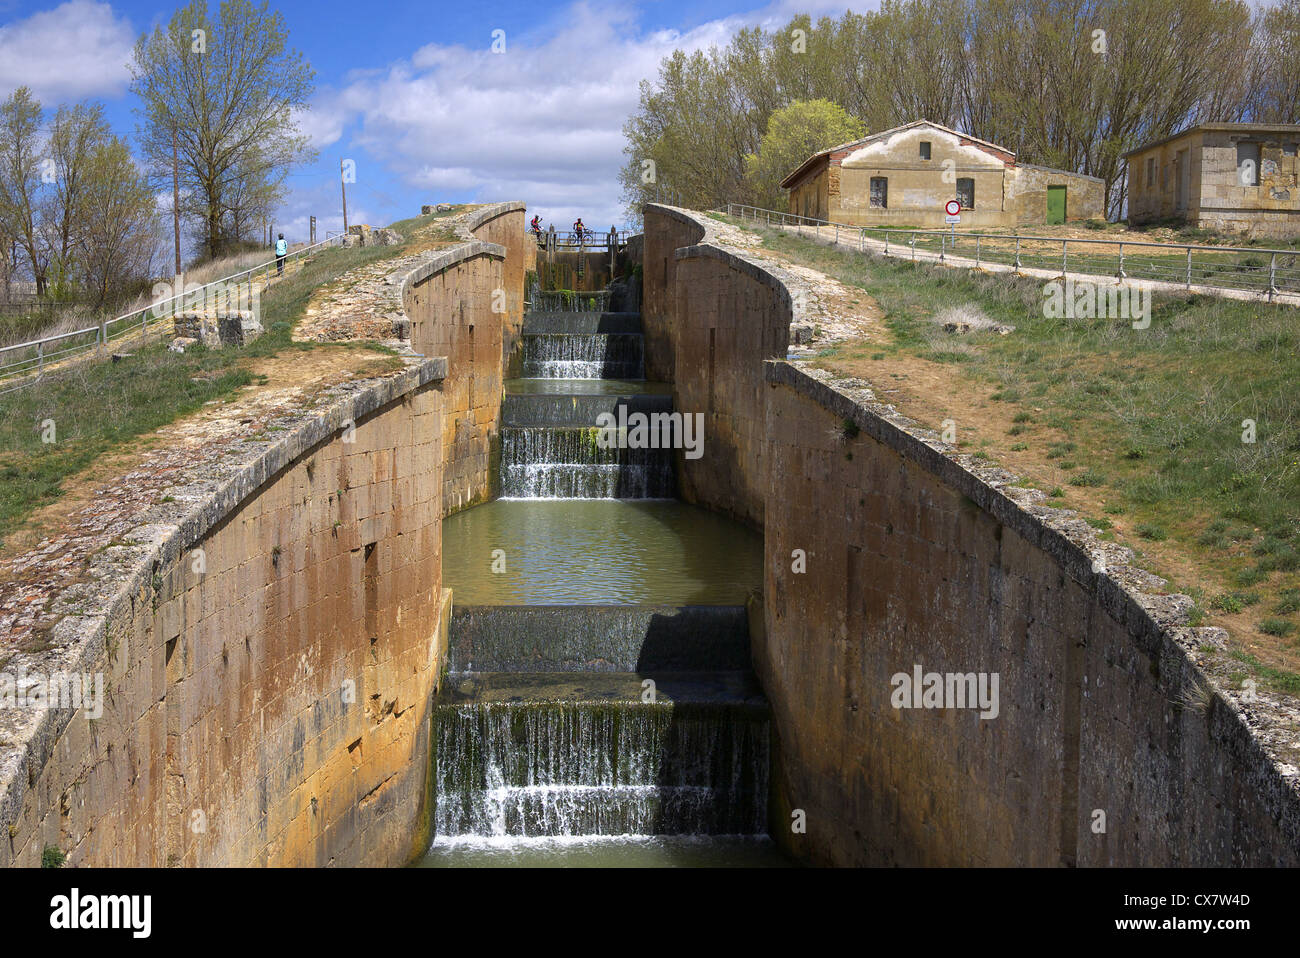 One of the locks on the Canal de Castilla near Fromista in Spain. - Stock Image